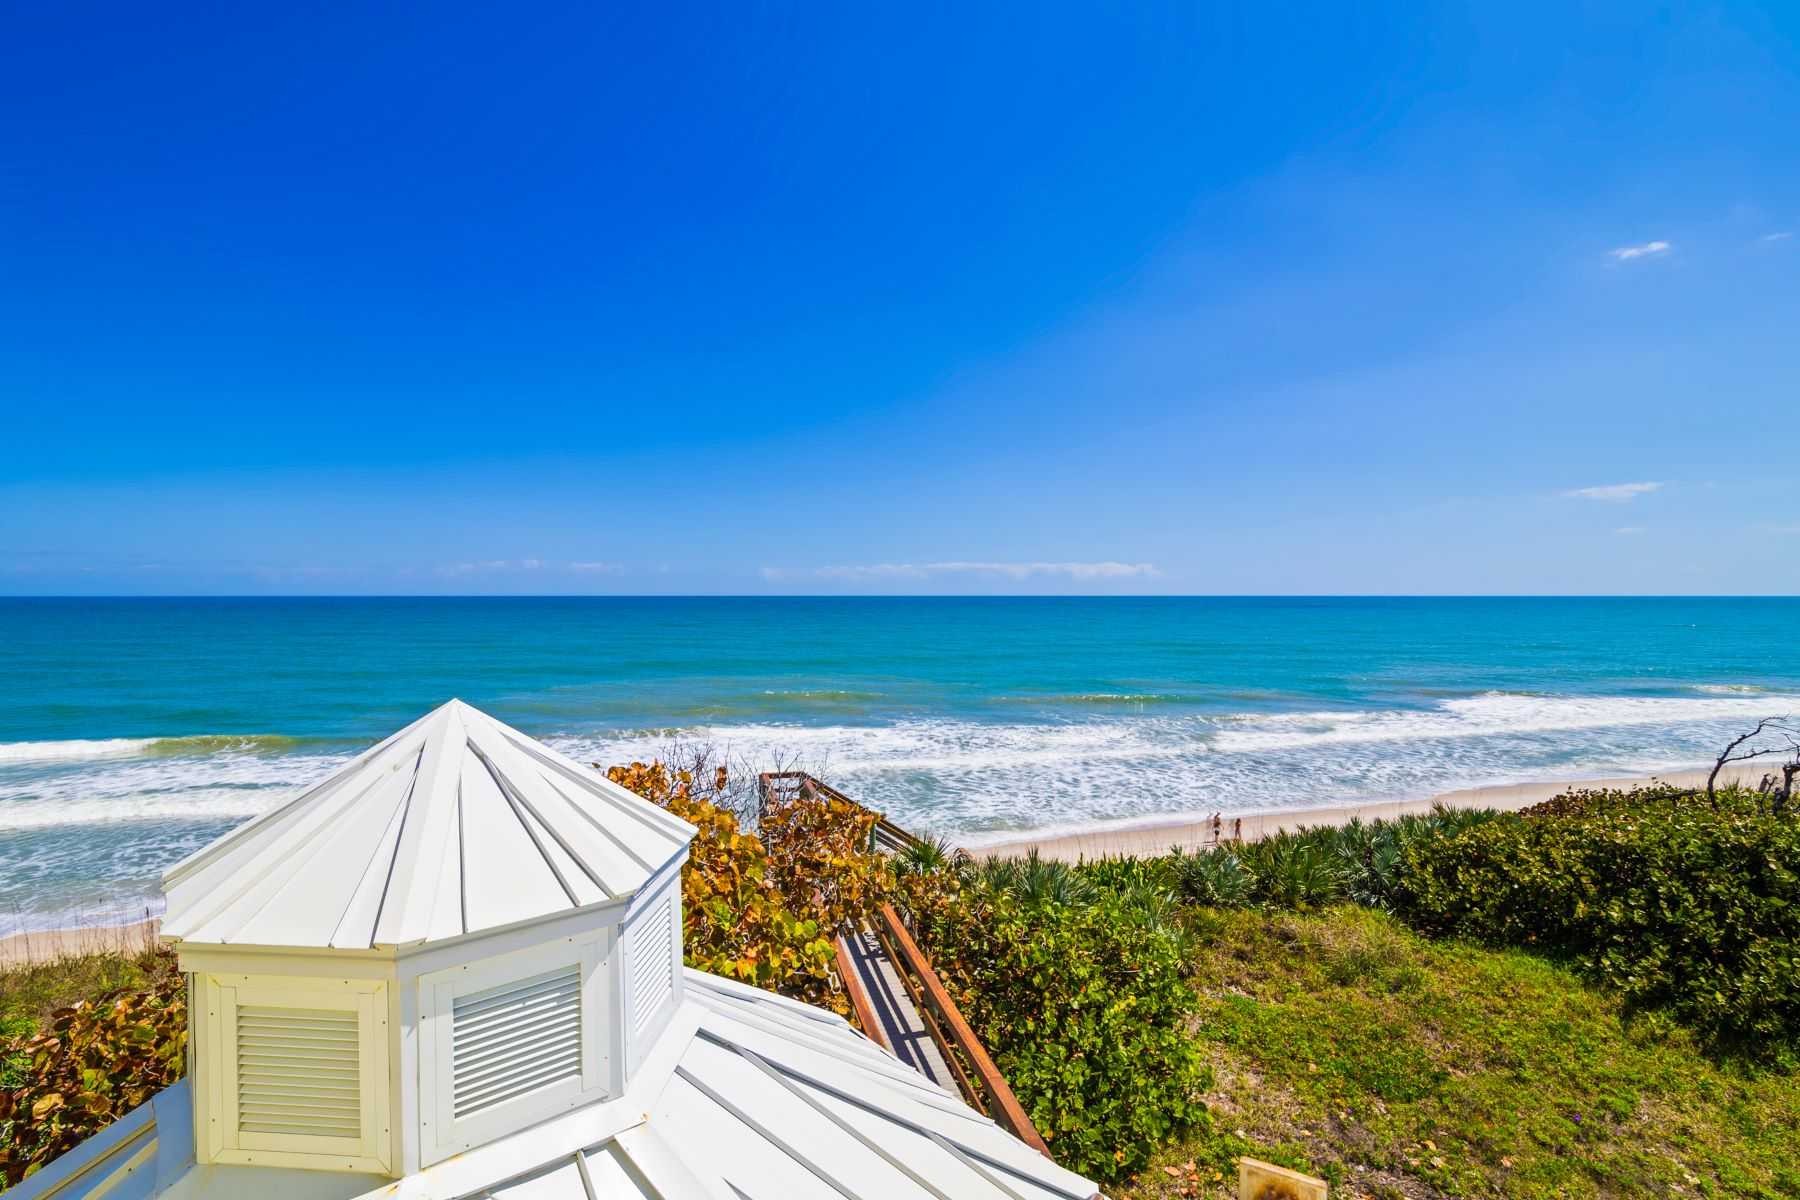 Additional photo for property listing at Spectacular Oceanfront Home Bordering Nature Preserve. 4515 S Highway A1A Melbourne Beach, Florida 32951 Estados Unidos